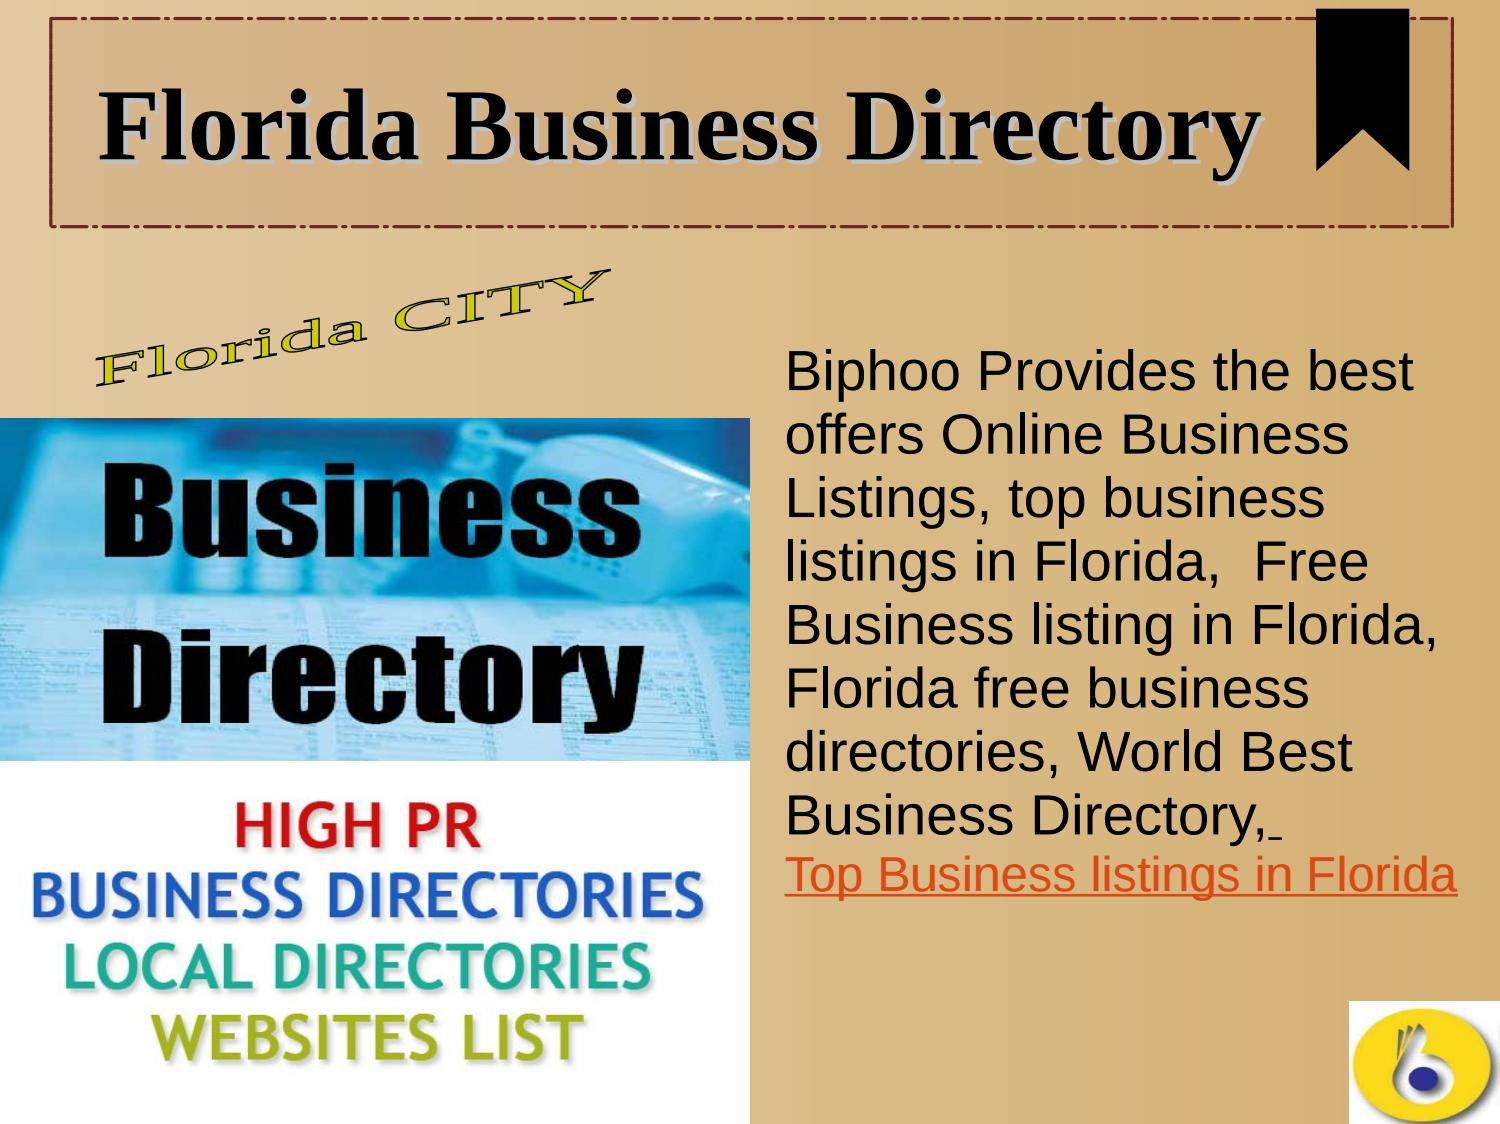 Florida business listing by florida Business Directory - issuu